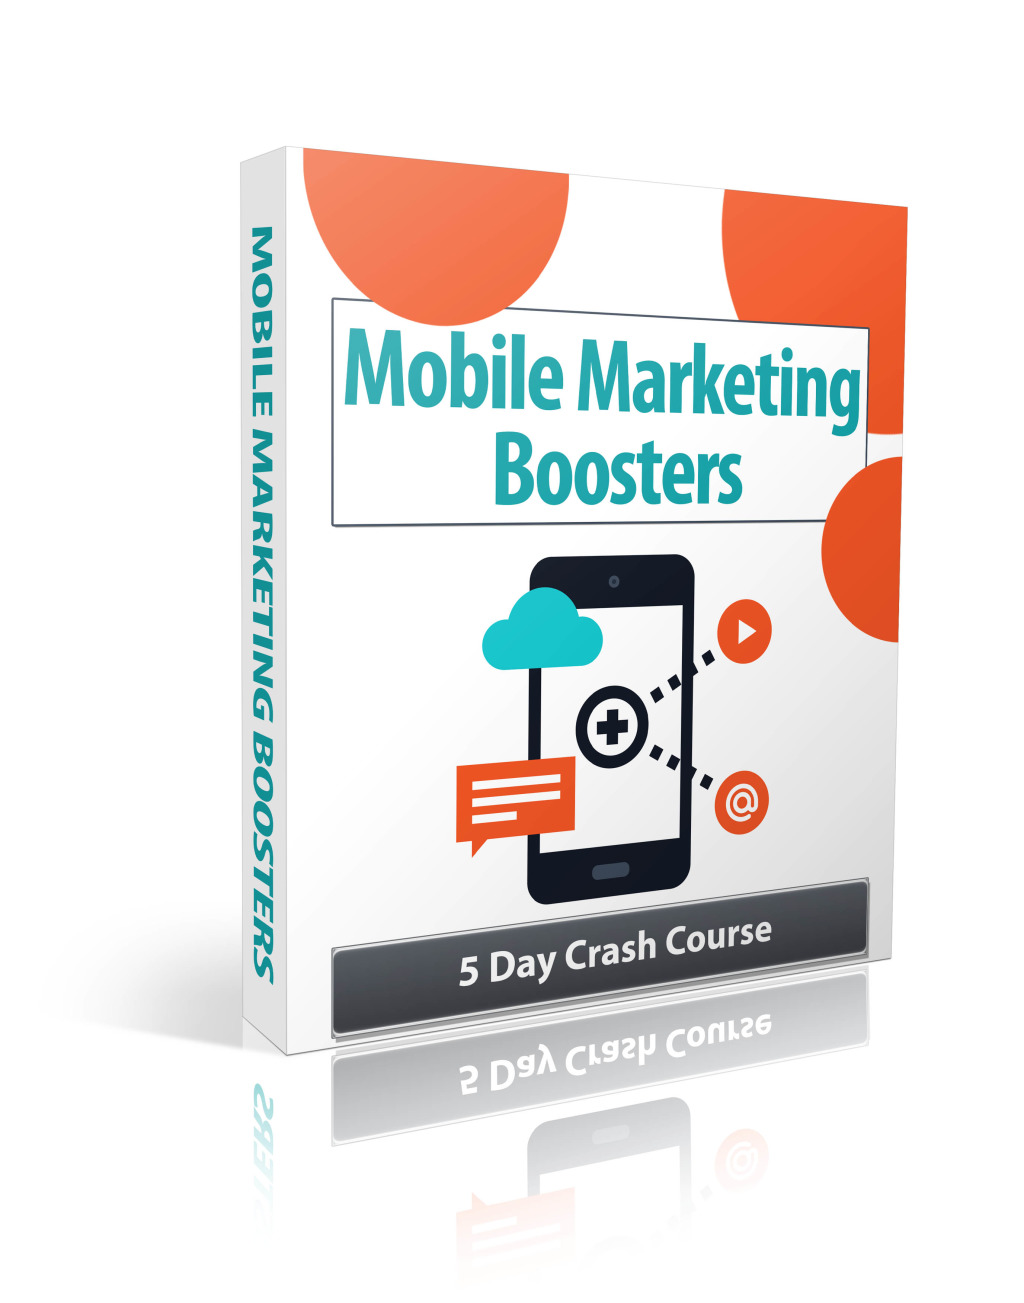 give Mobile Marketing Boosters